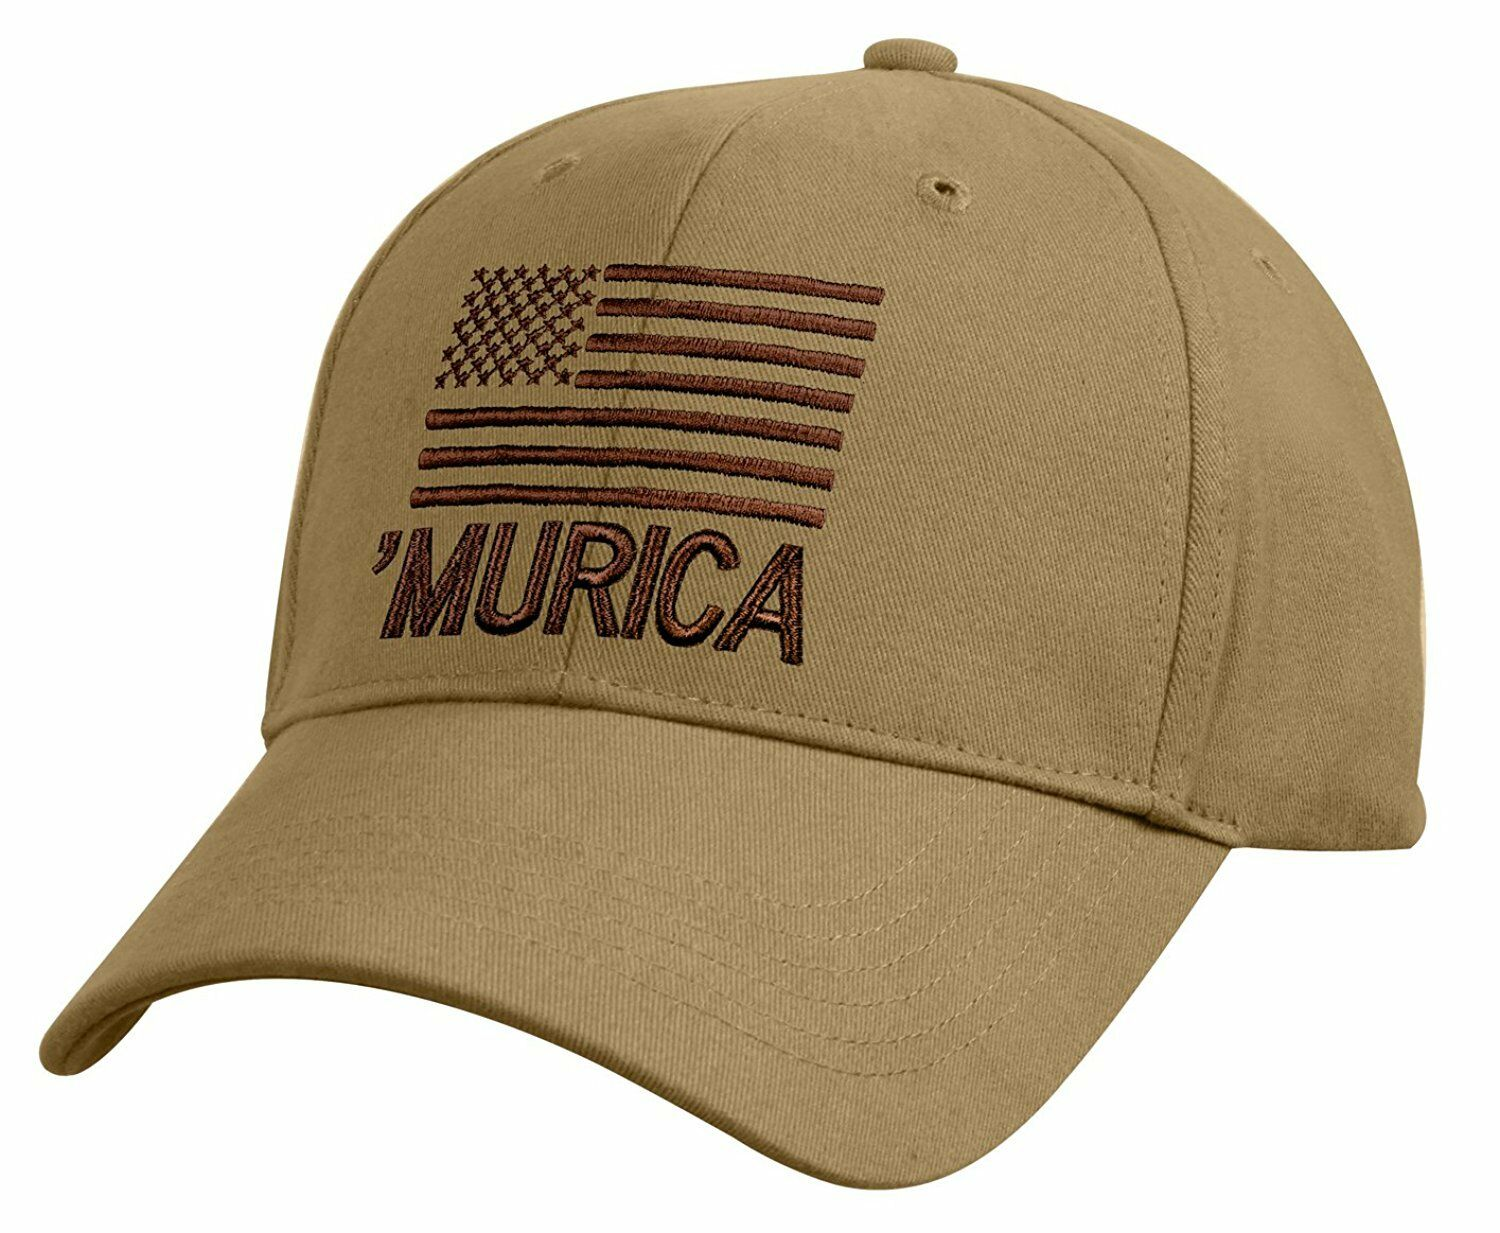 Details about Rothco 9900 Deluxe Murica Low Profile Cap - Coyote Brown 980af372ab0d